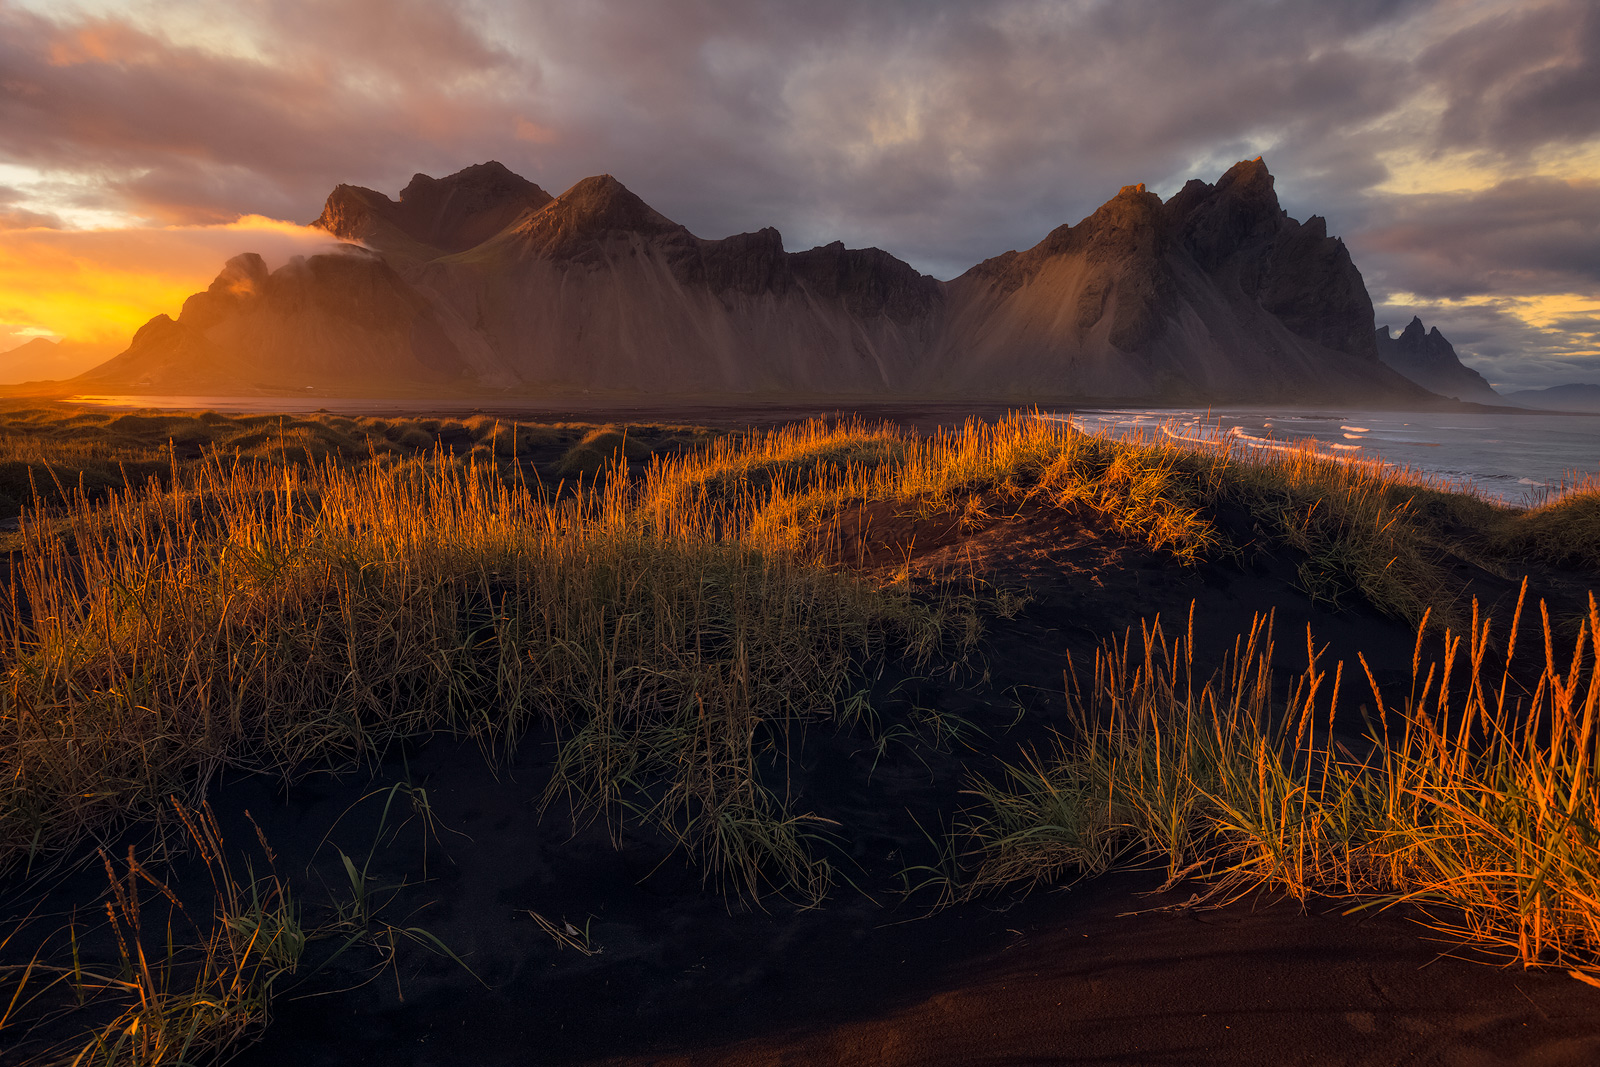 LANDFORM,LIGHT,LOCATION,beach,eastern,europe,field,hofn,iceland,klifatindur,mountain,pond,pool,sand,southern,sunset,vesterhorn,water body, photo